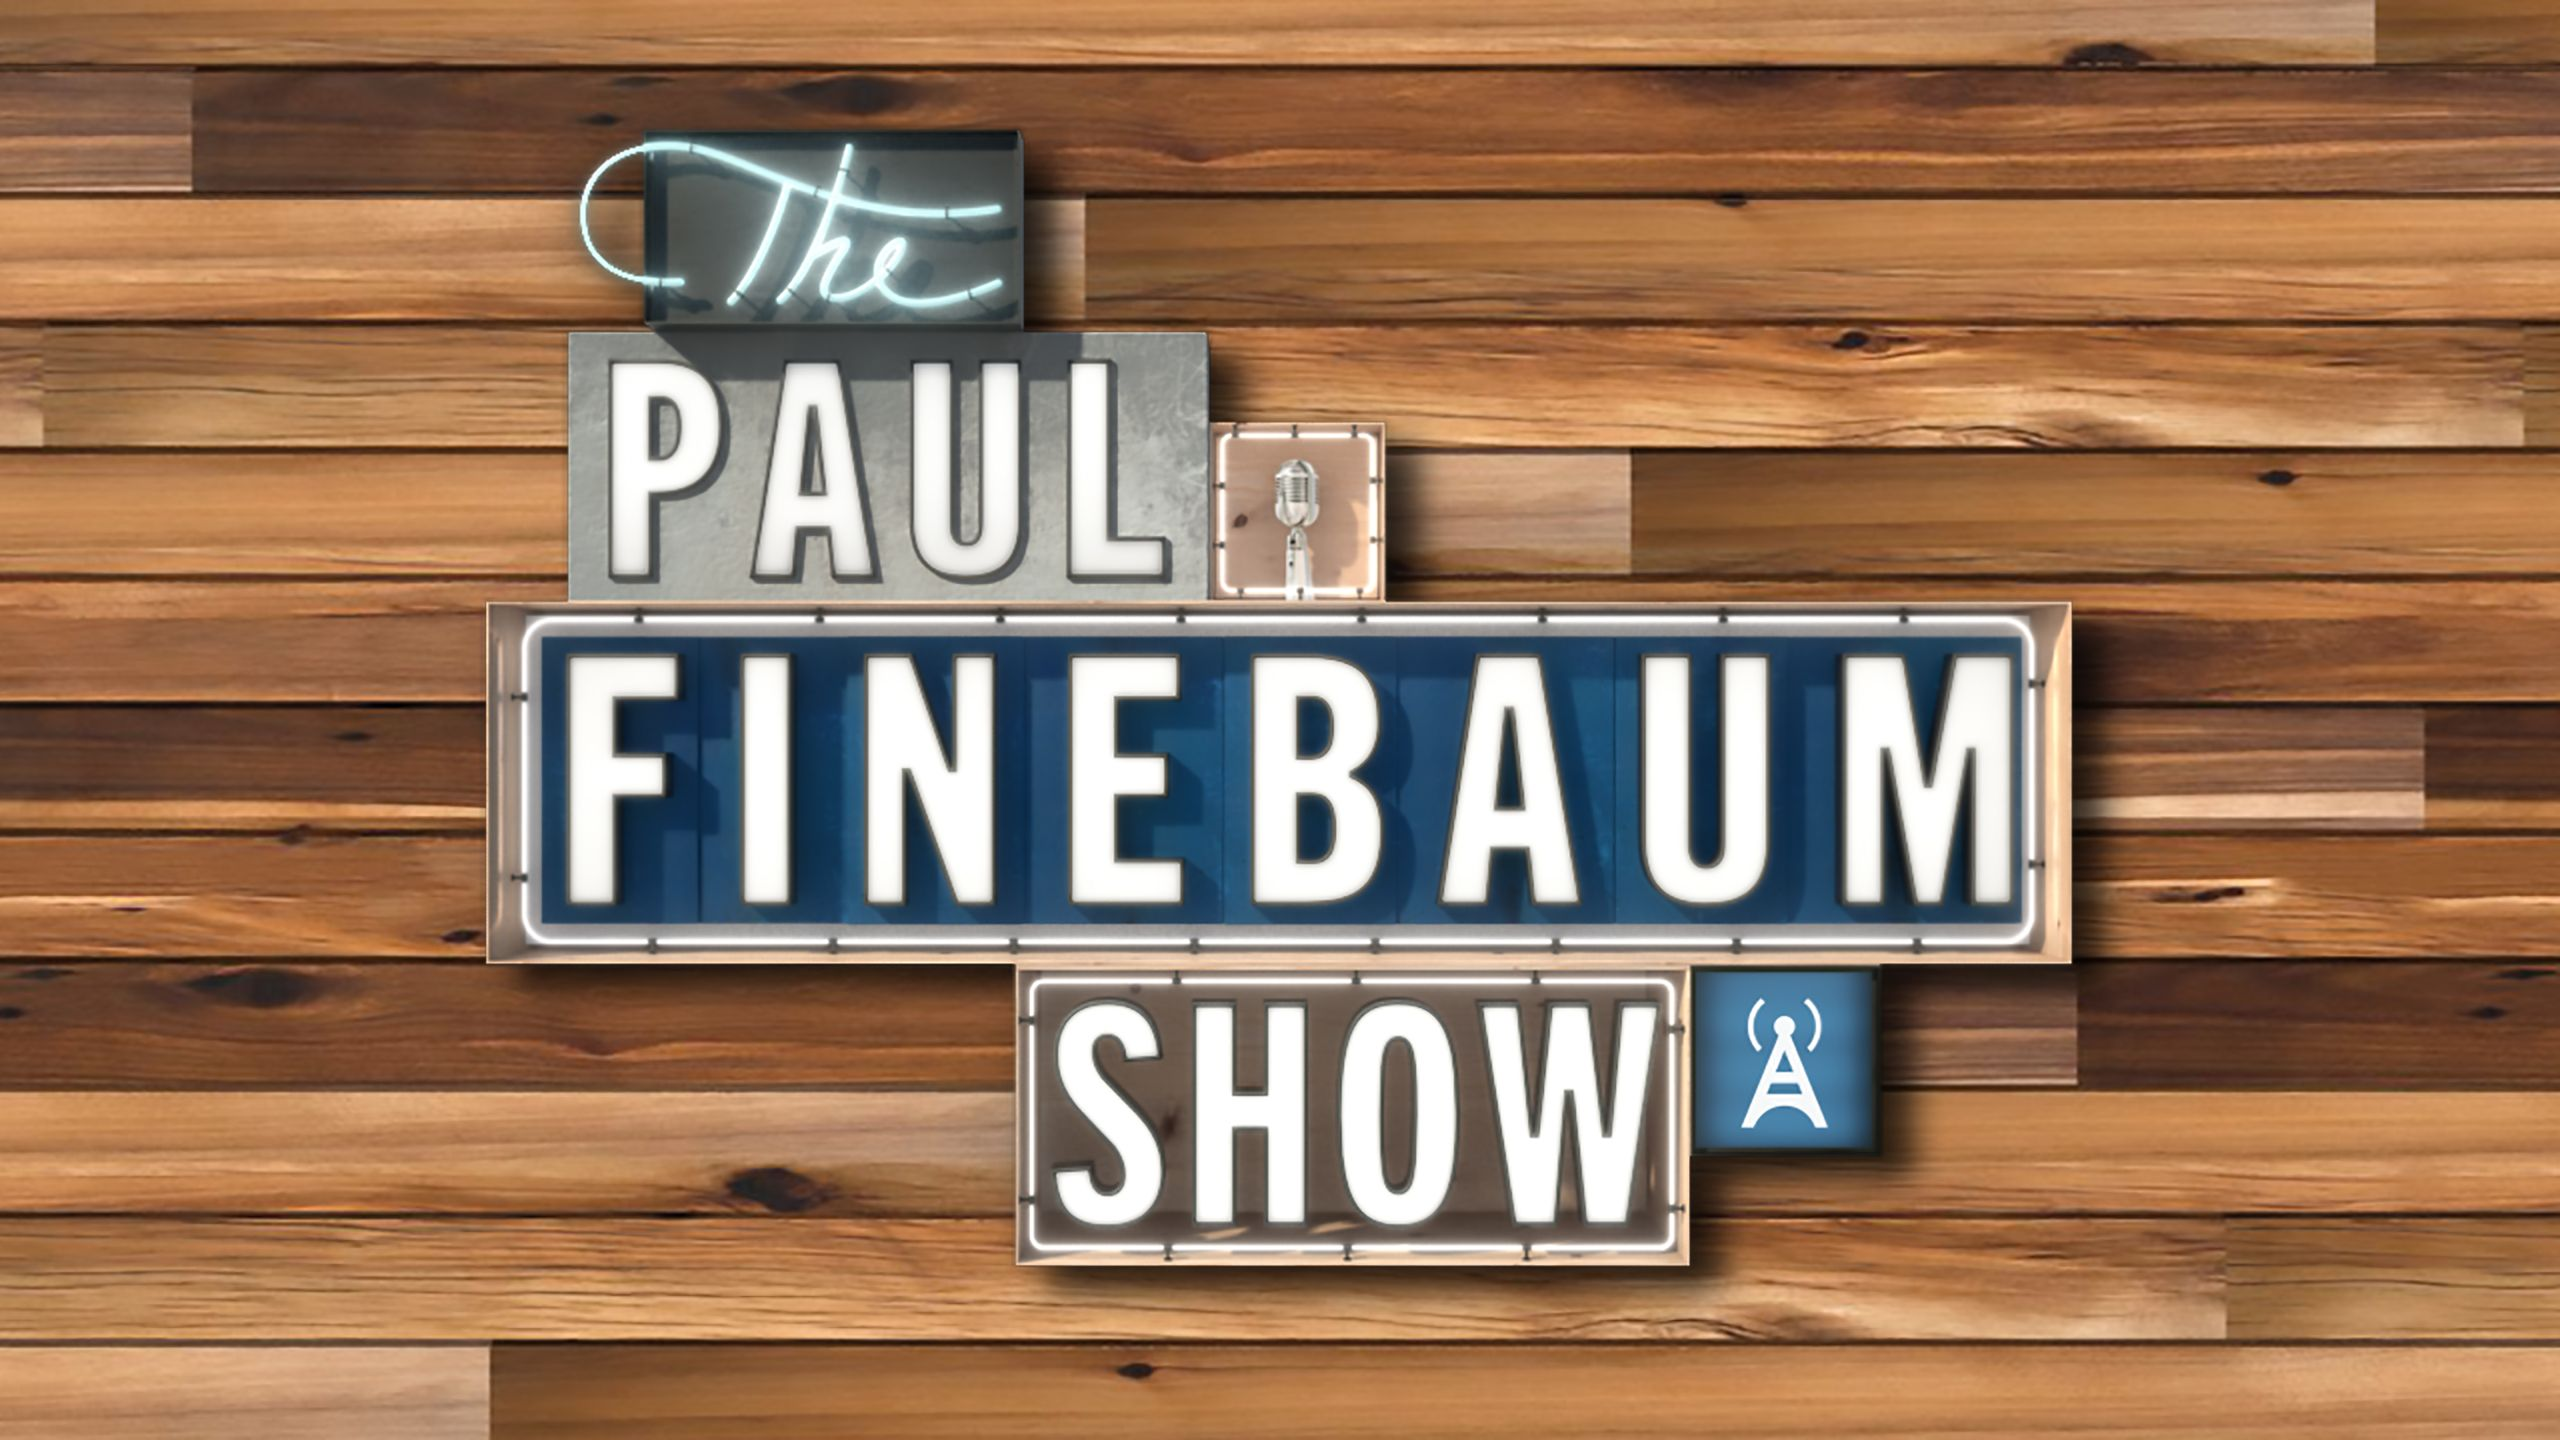 The Paul Finebaum Show Presented by Johnsonville